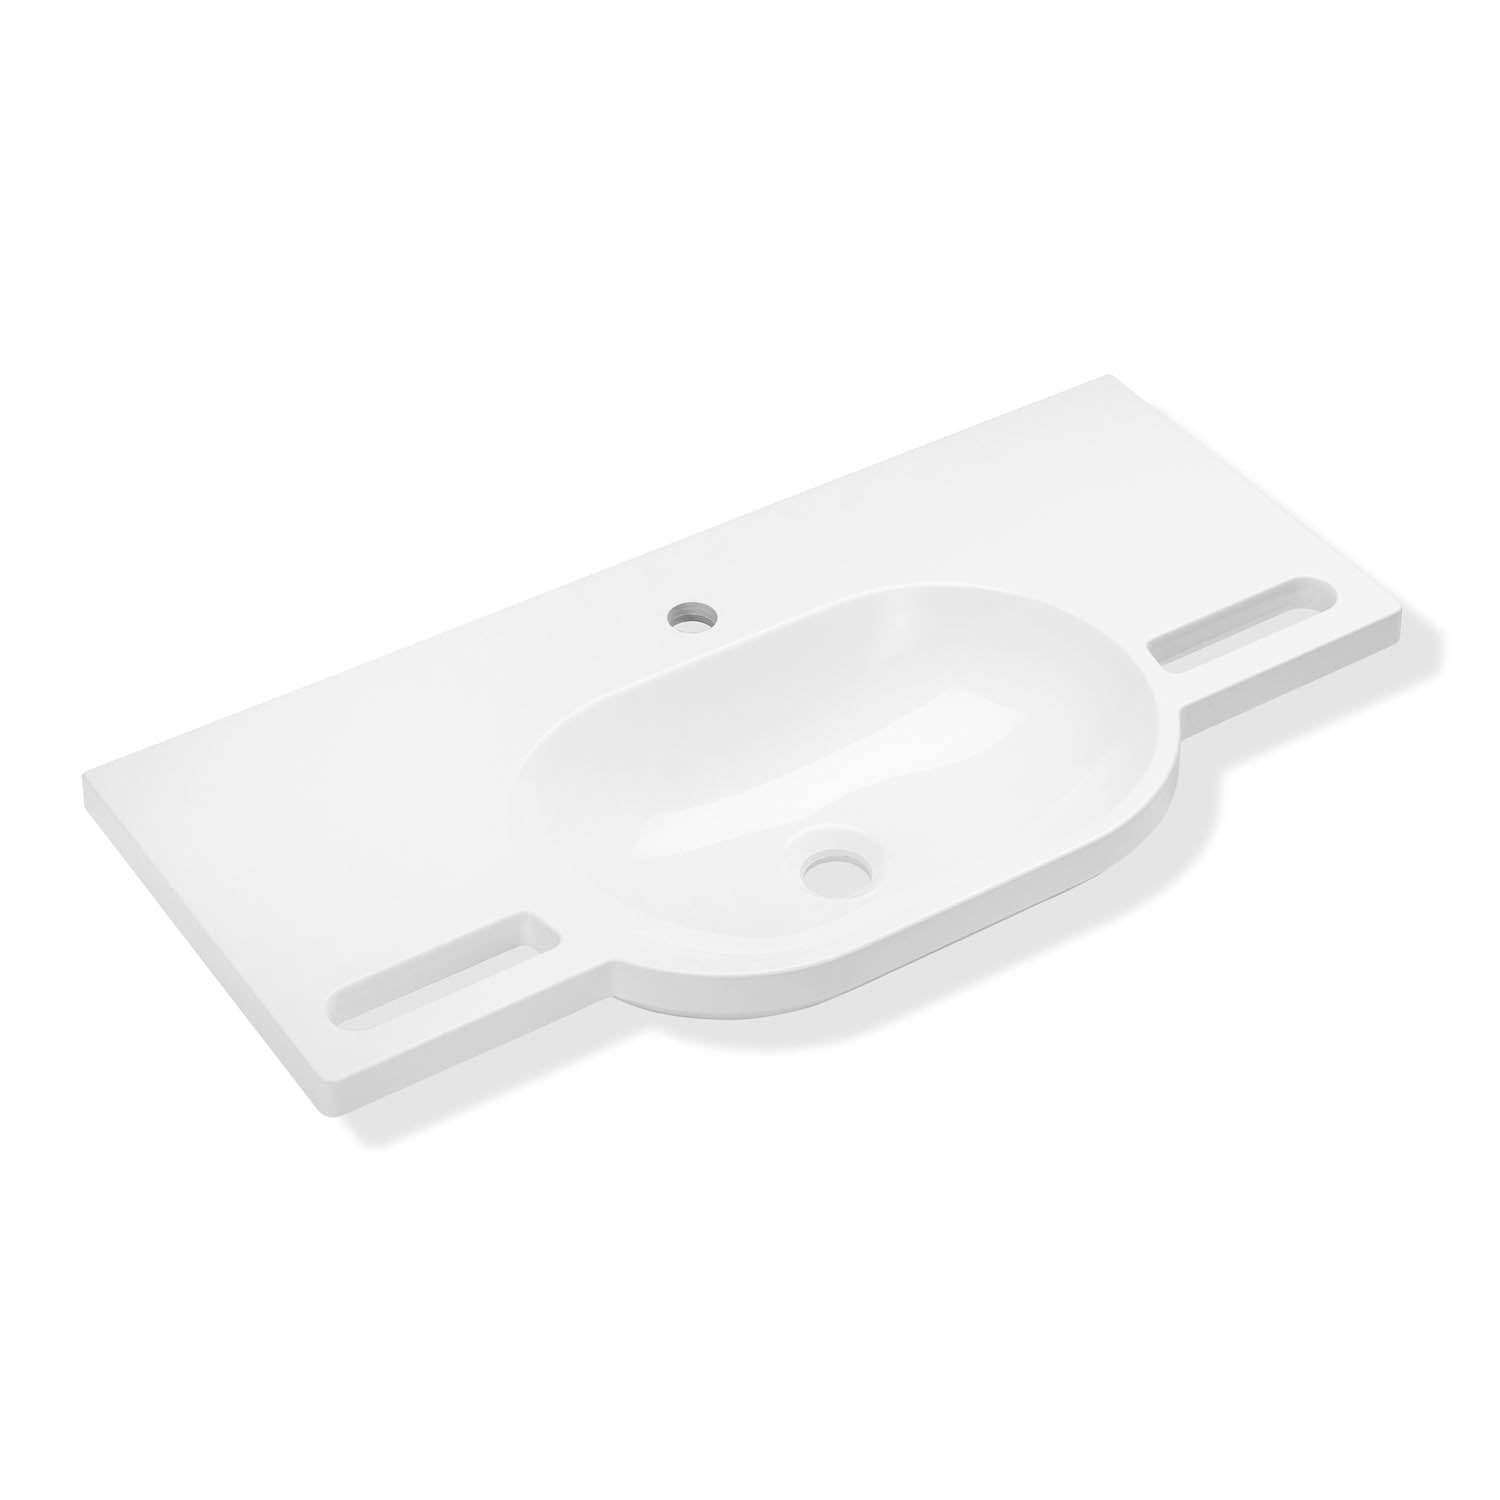 850mm SurfaceHold Wall Hung Long Oval Basin with one tap hole on a white background